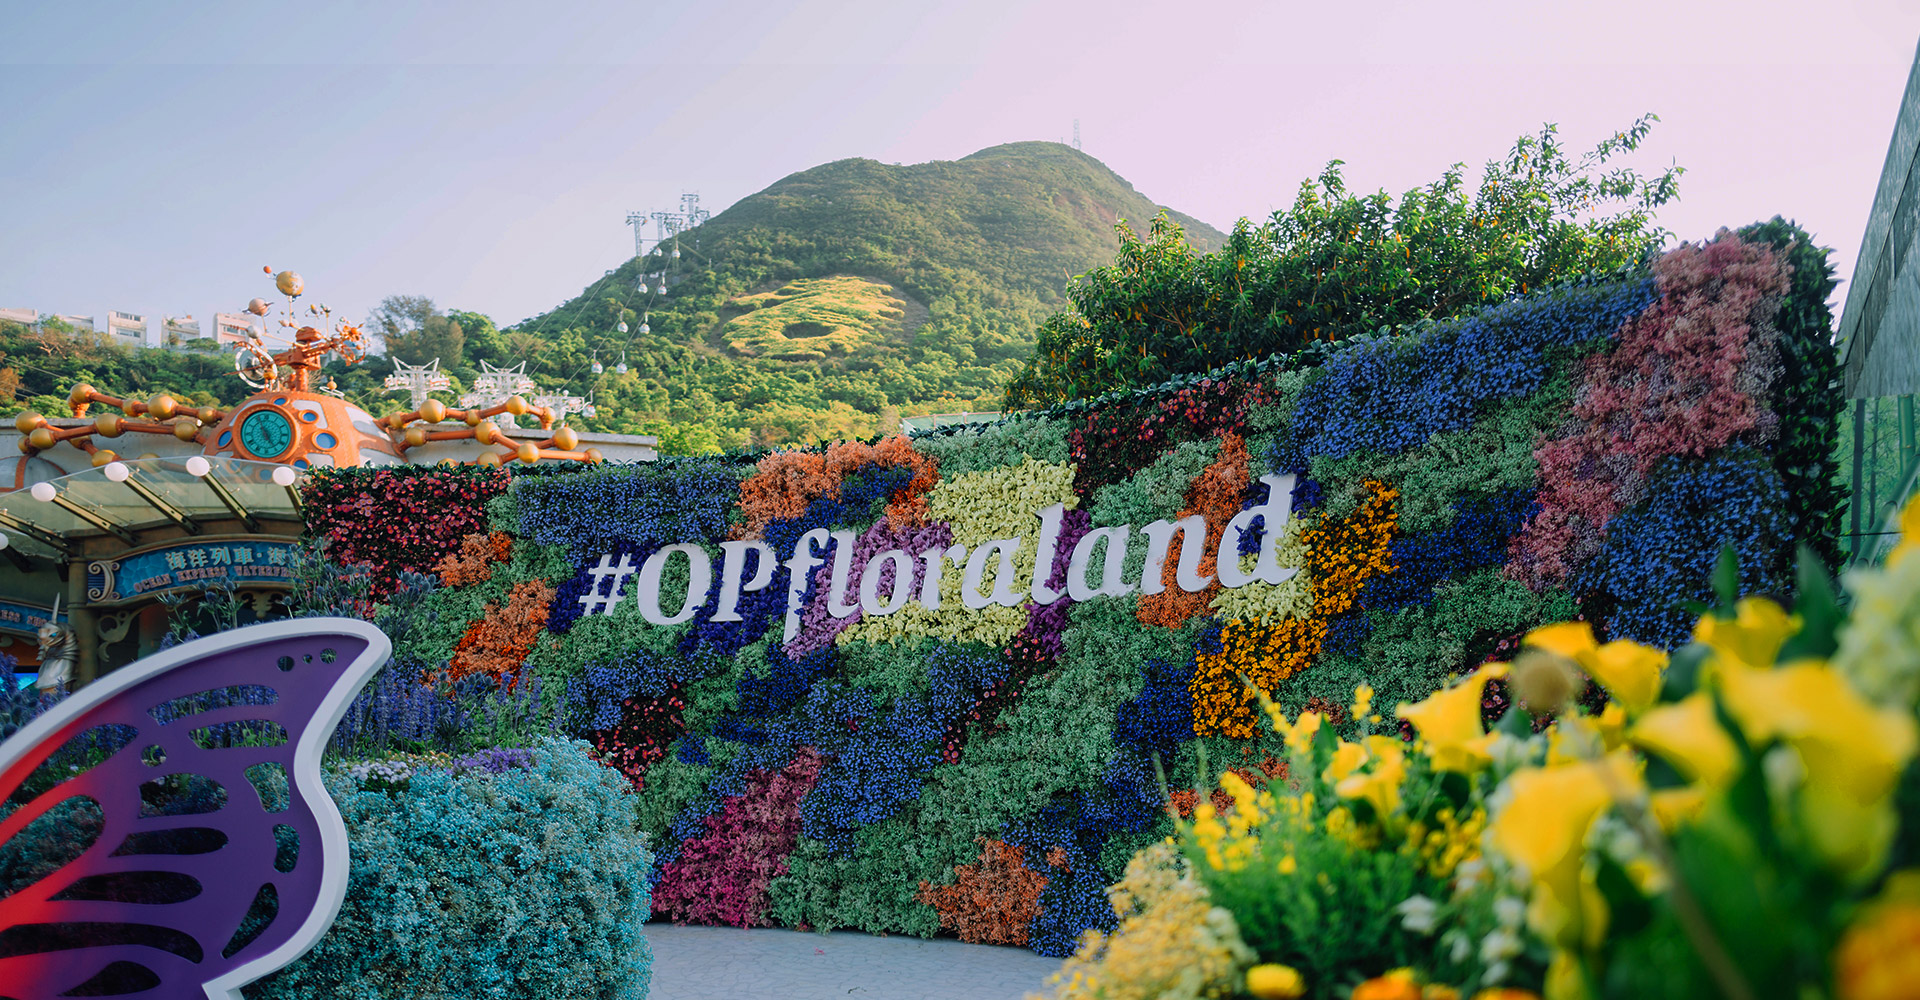 https://media.oceanpark.com.hk/files/s3fs-public/Floraland-inside-dp-2.png